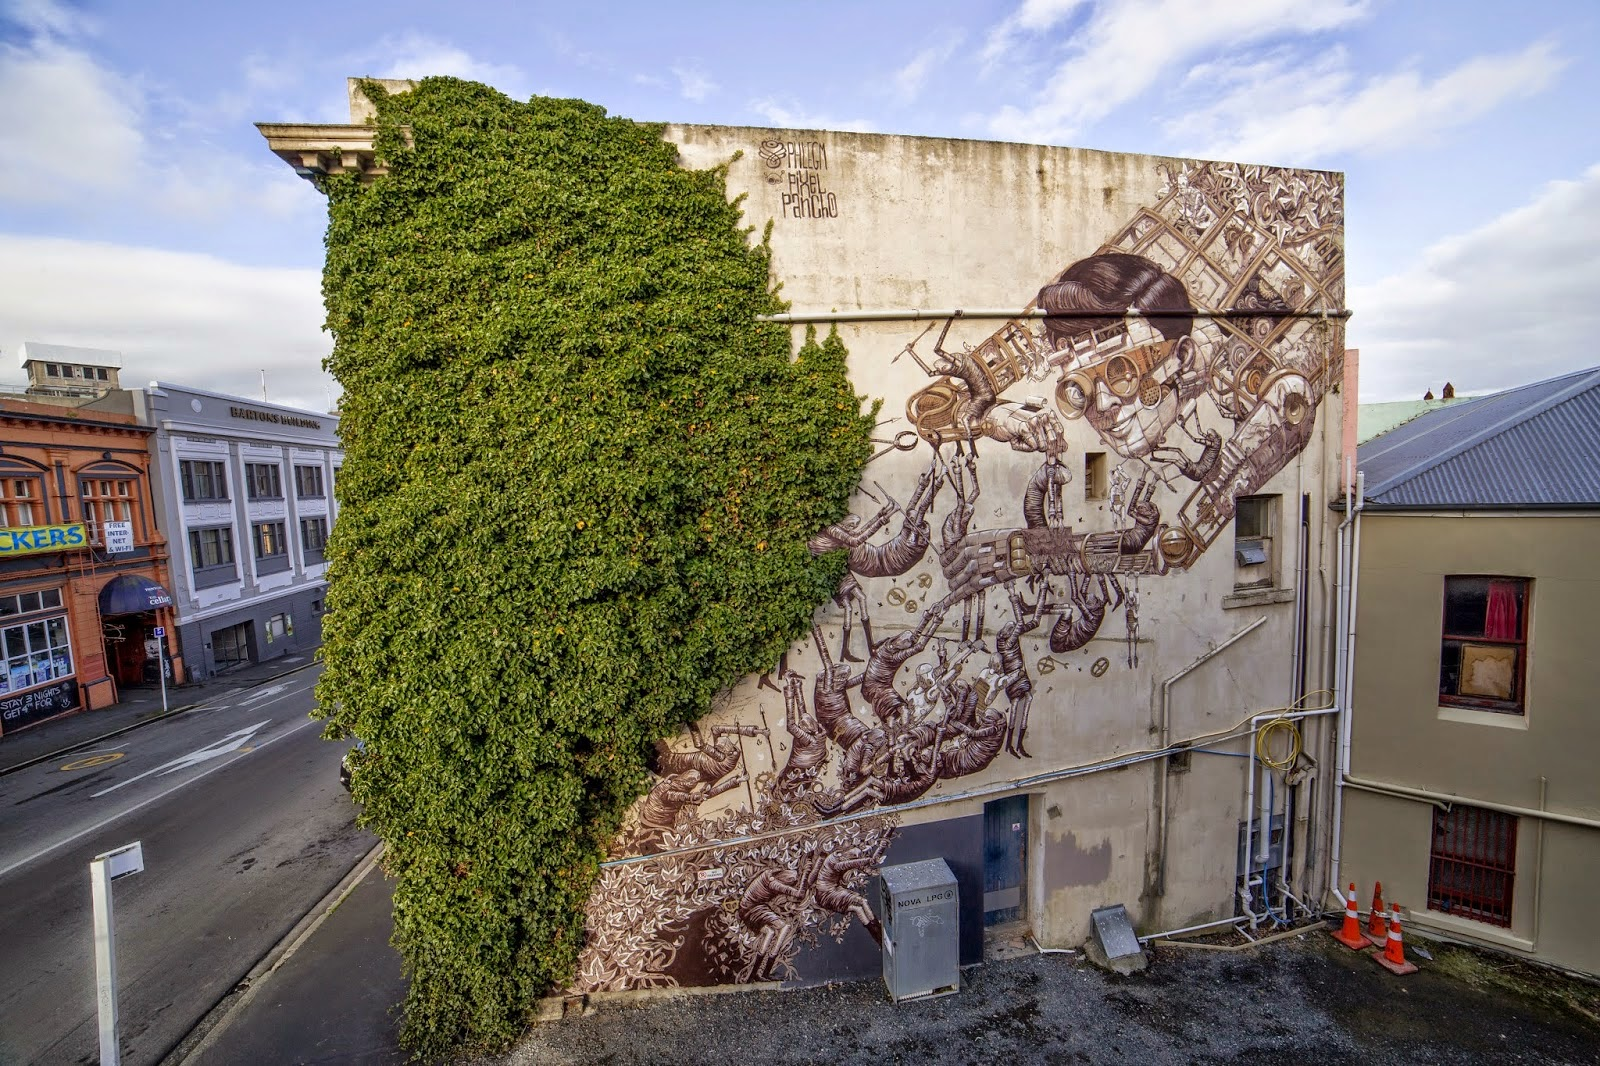 Pixel Pancho and Phlegm are currently in New Zealand where they joined forces to work on a new piece on the streets of Dunedin.